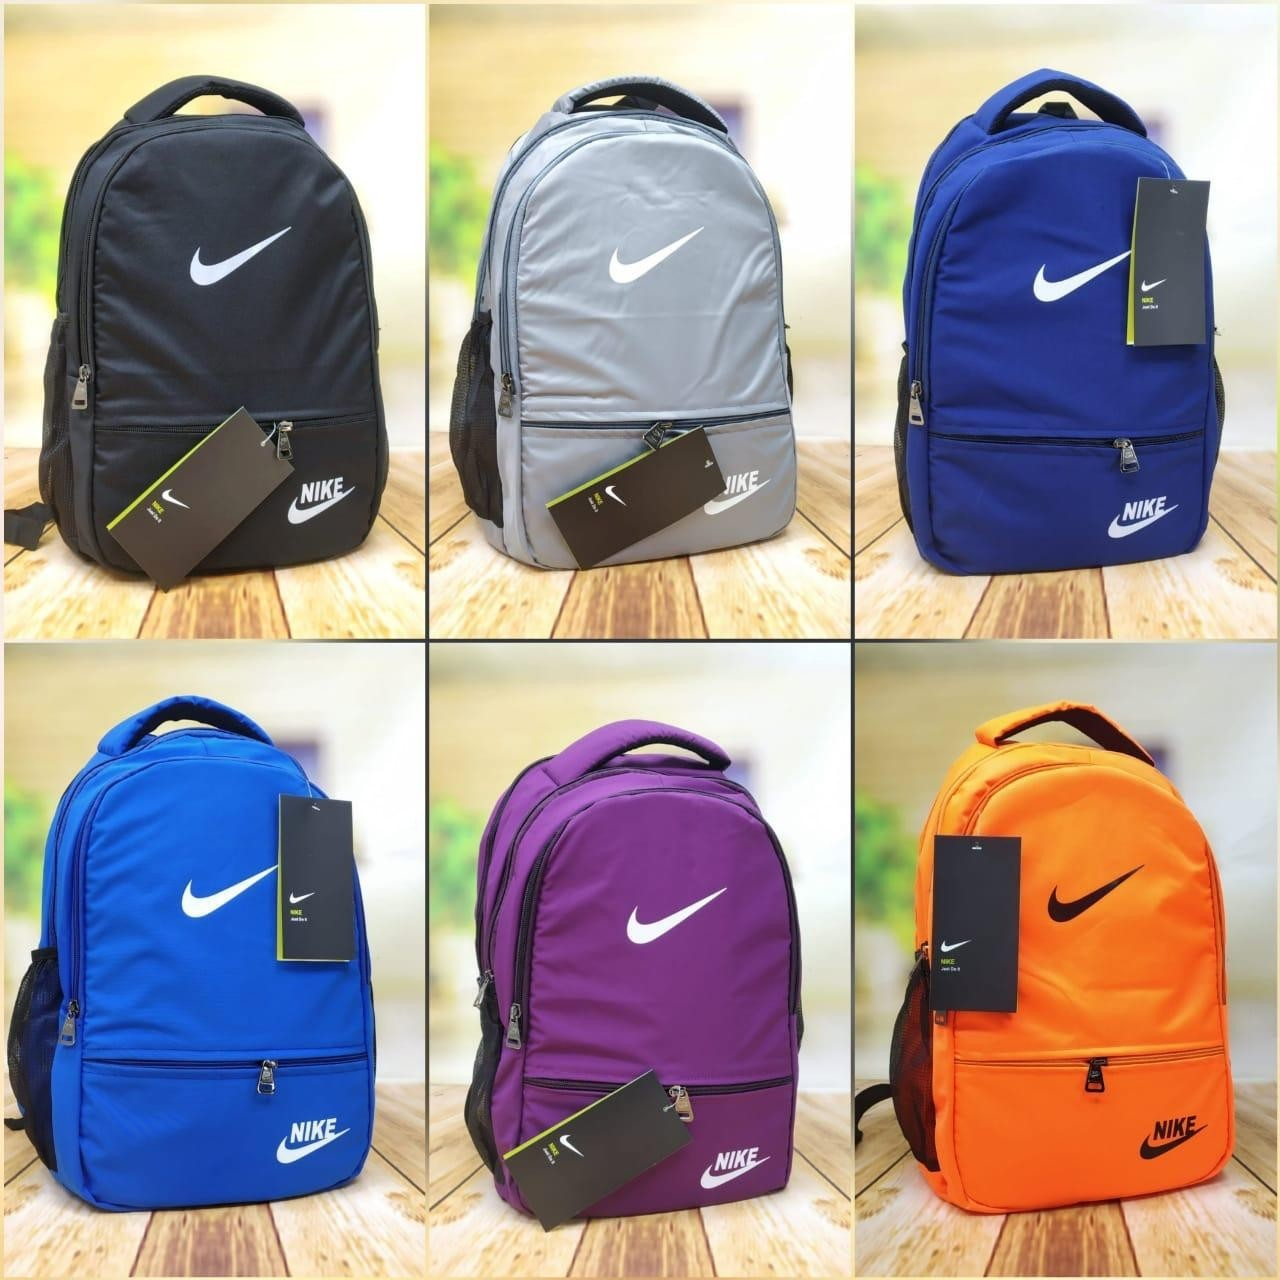 Nike laptop Bag Backpack